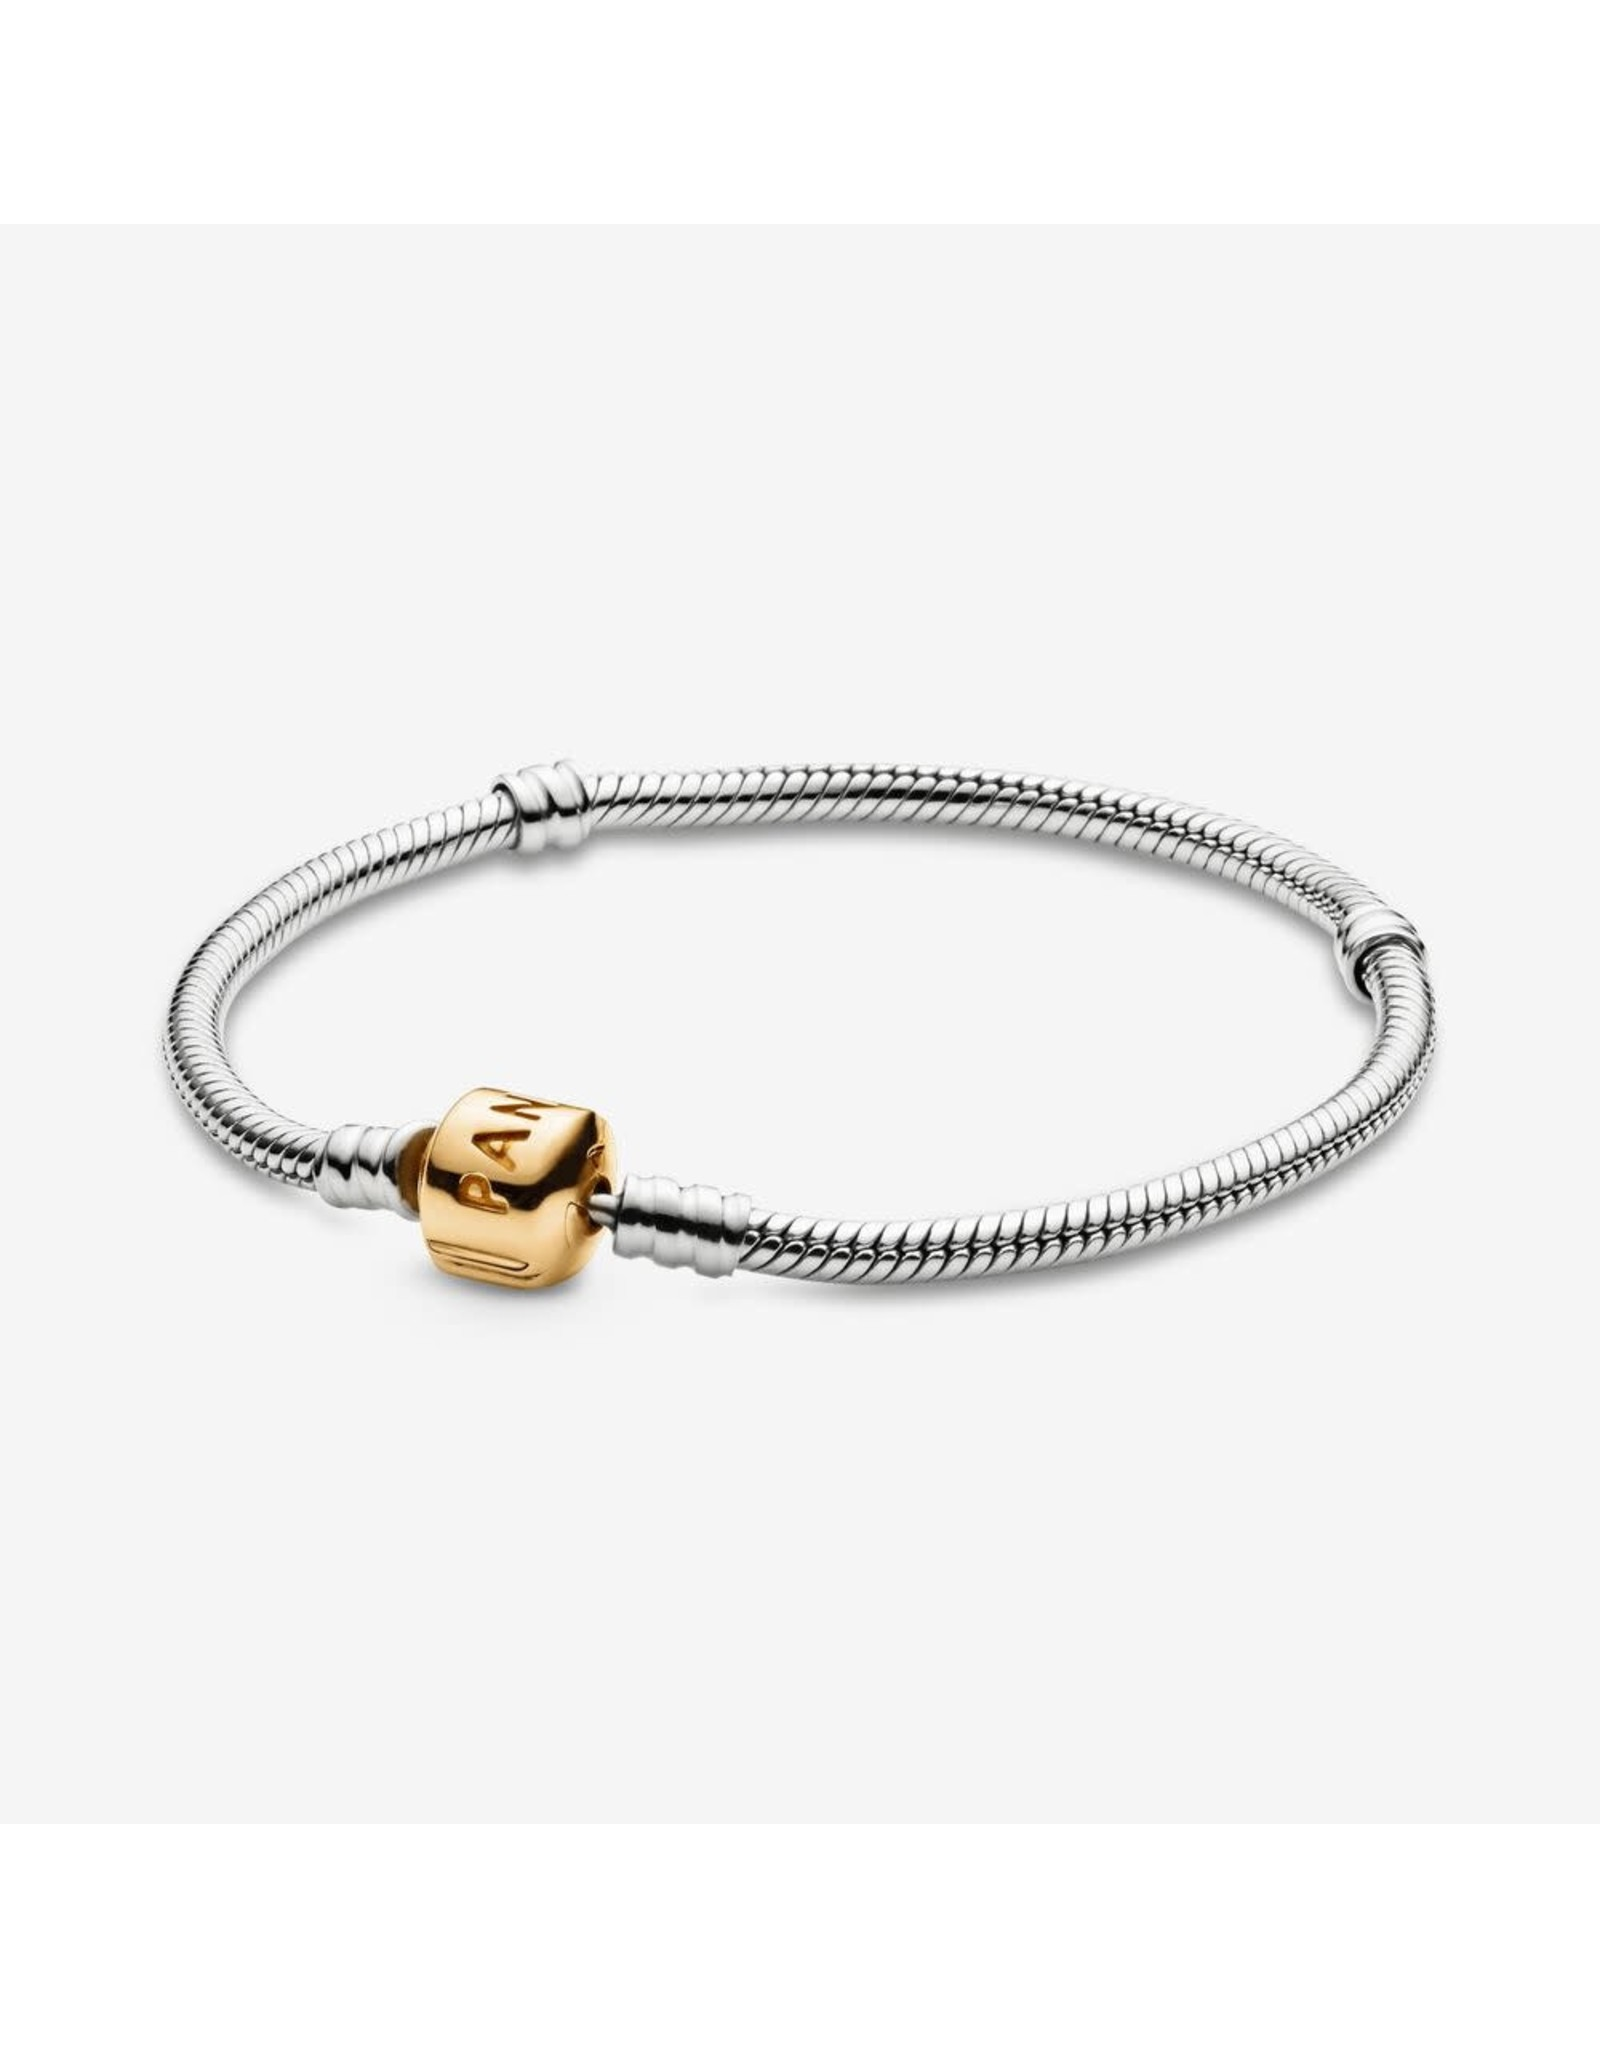 Pandora Pandora Moments Snake Chain Bracelet Sterling Silver And 14K Gold